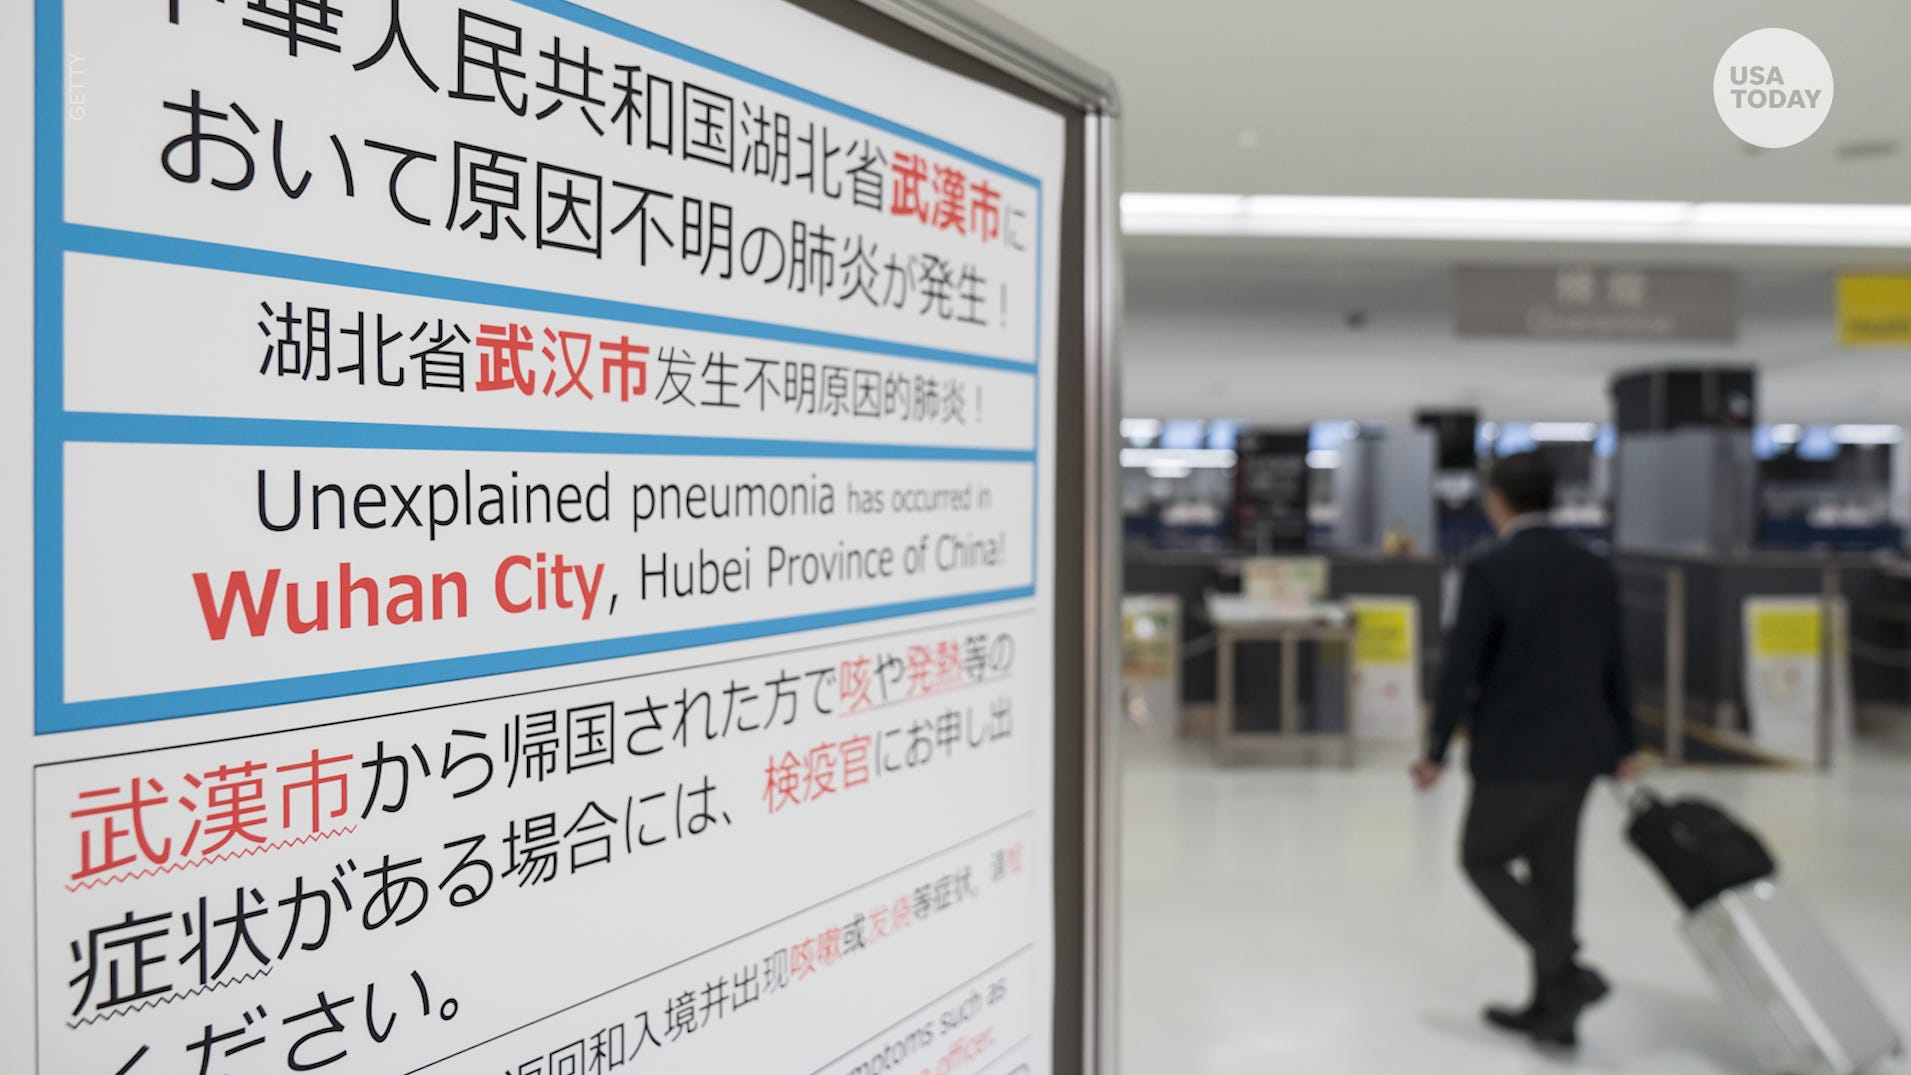 Death of doctor who warned about coronavirus triggers national backlash over China's censorship